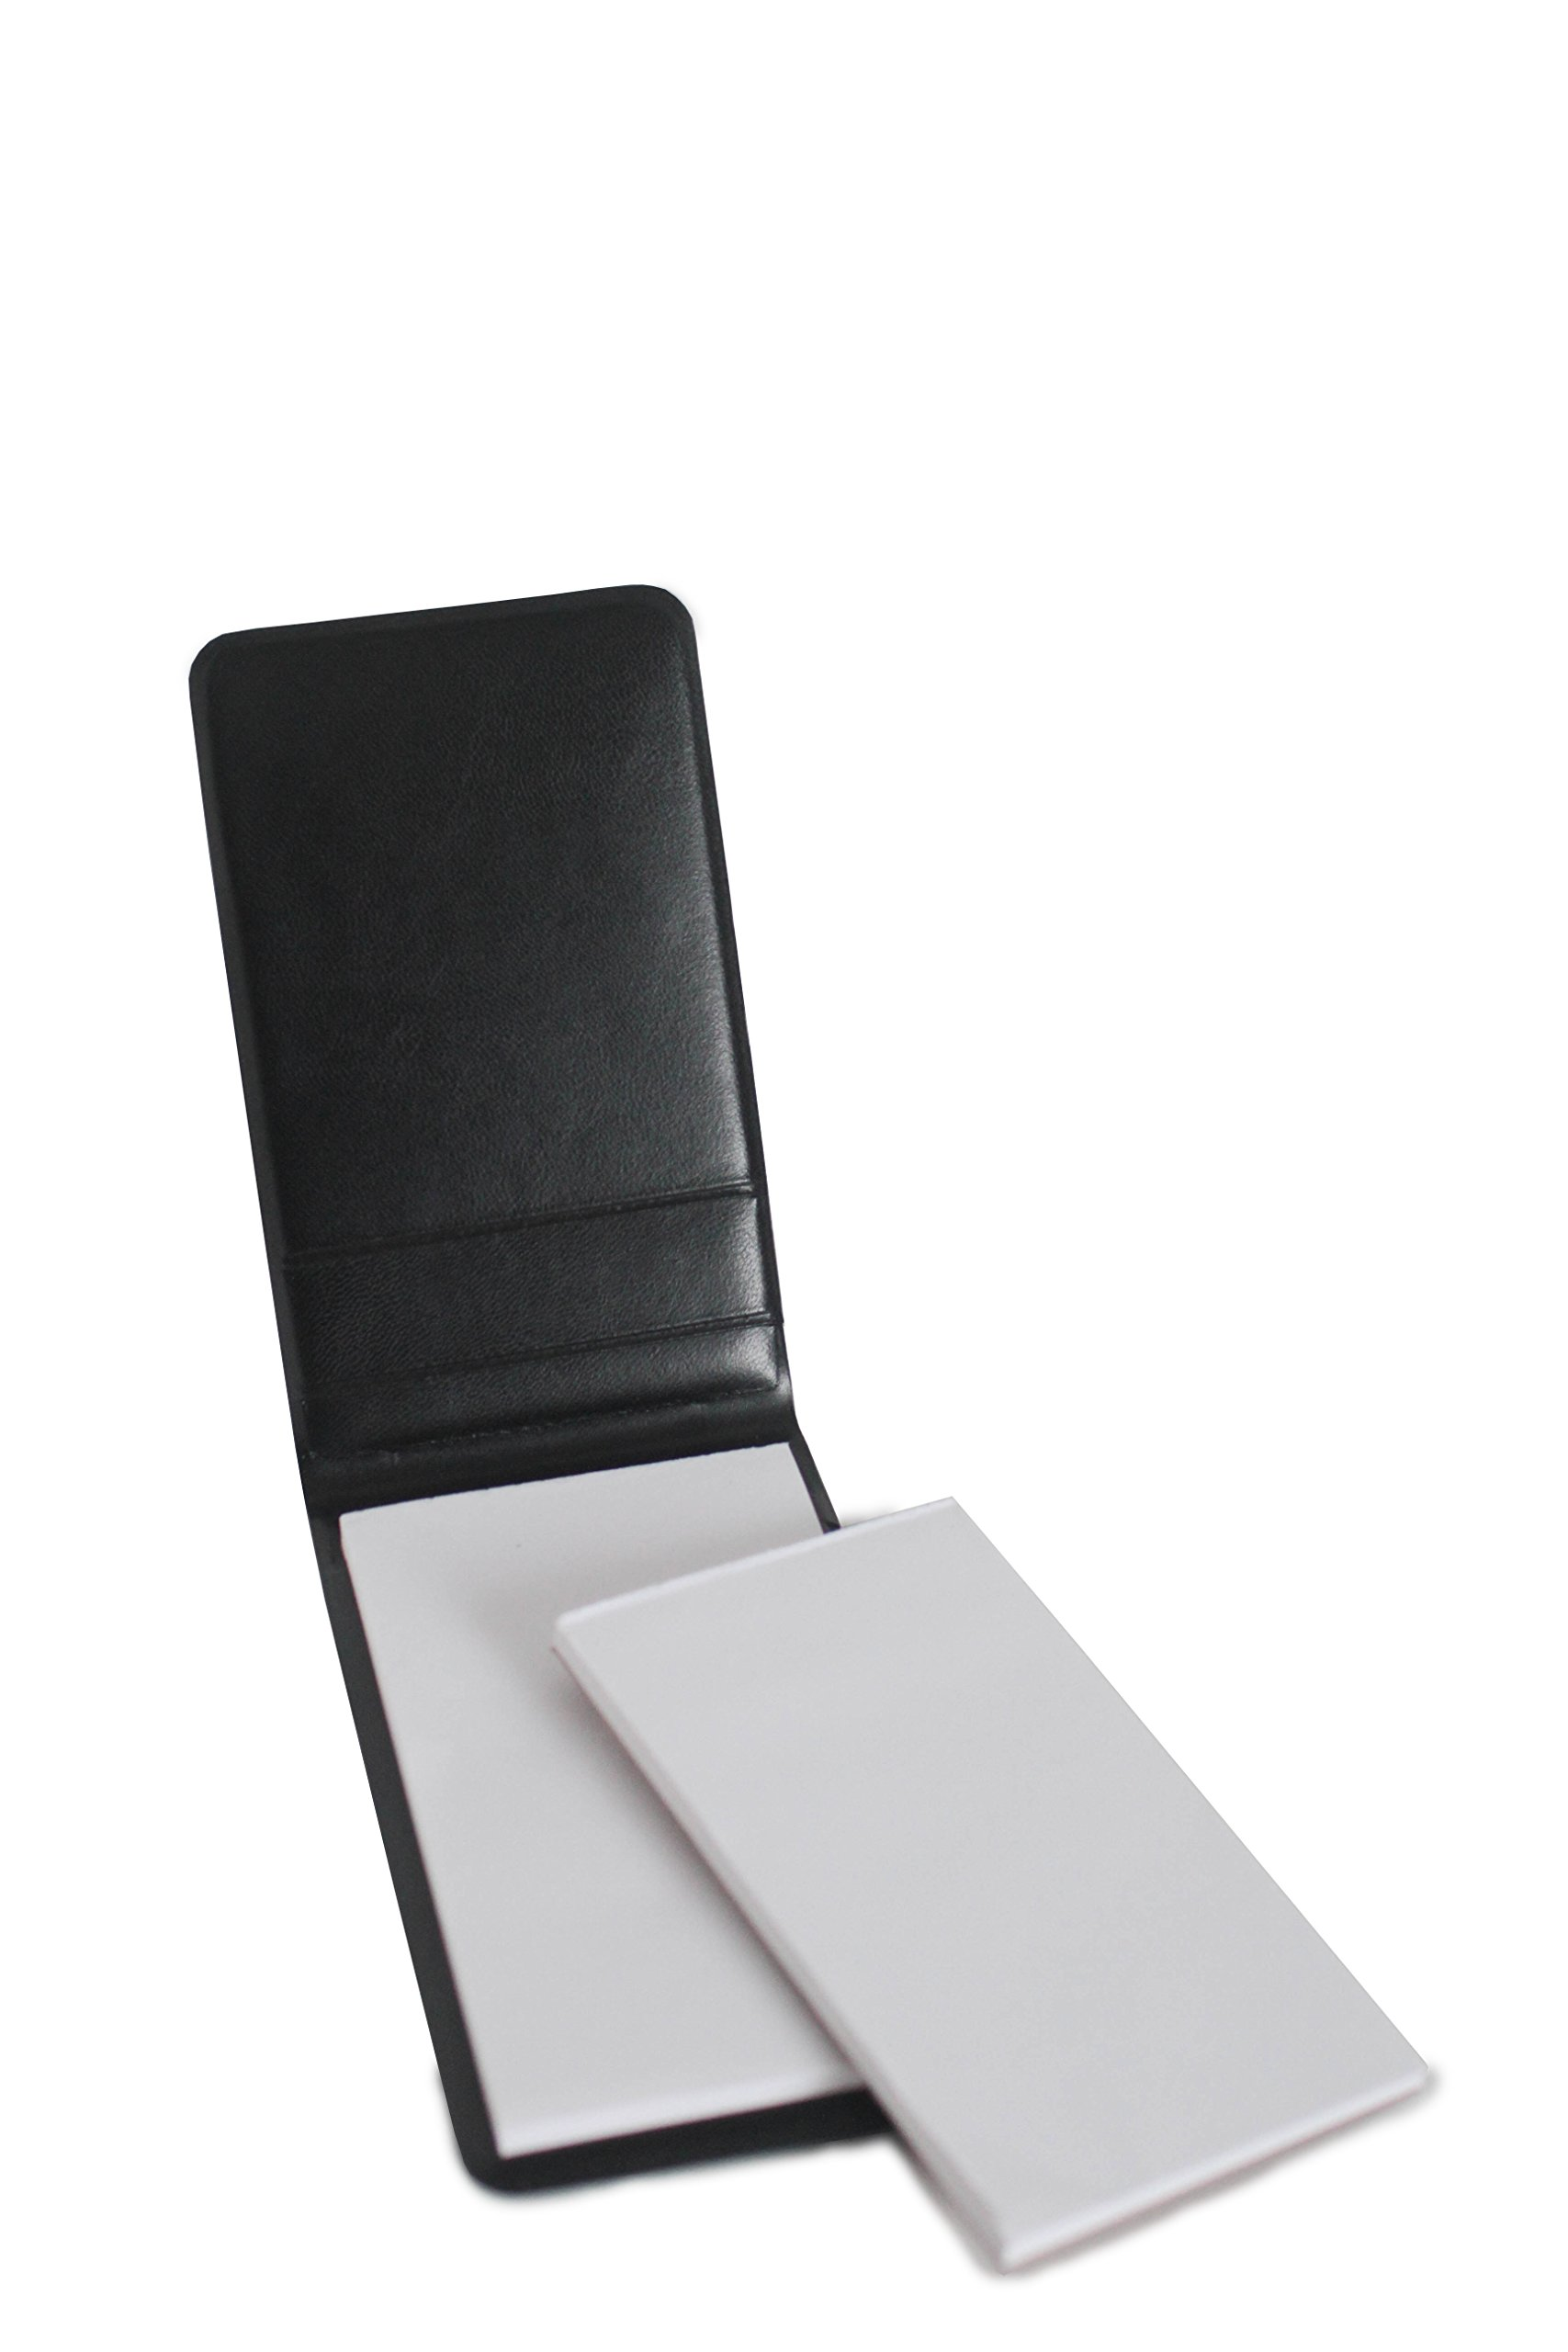 HNR 3x5 Memo Book Cover- 2 Note Pads Included! - Memo Pads and Books Fit Perfectly - Note Pad Cover & Holder